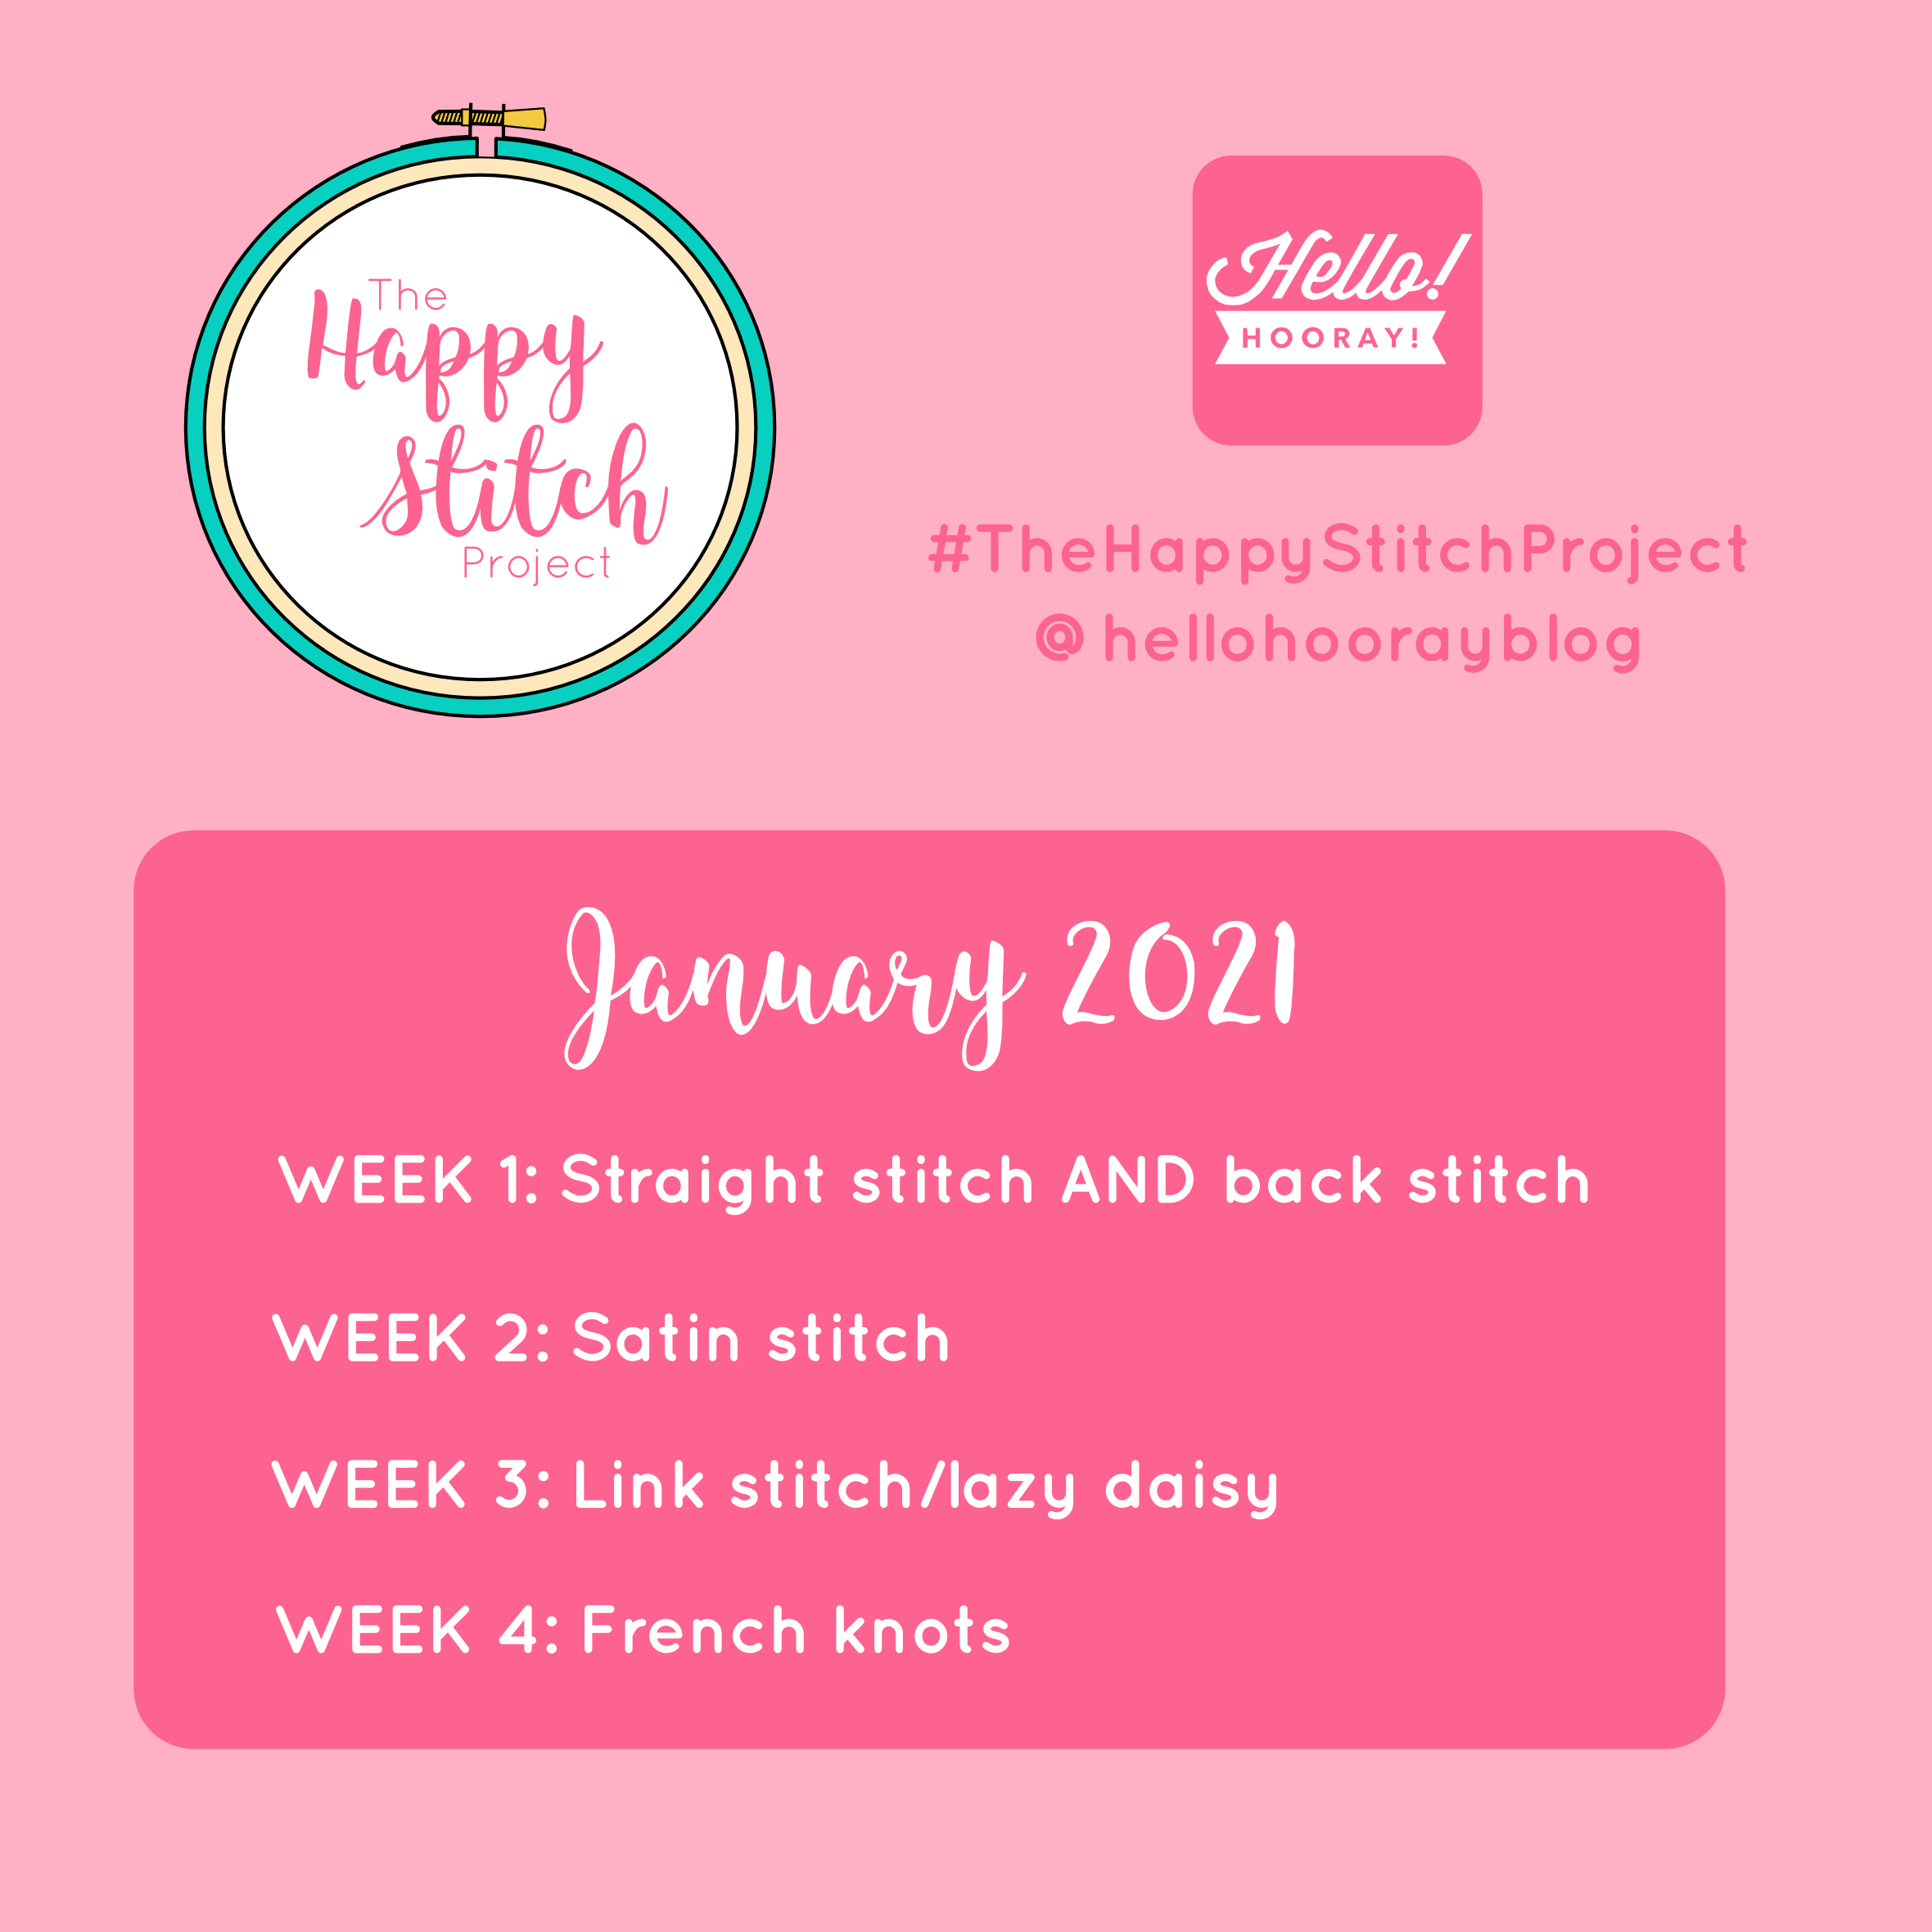 The Happy Stitch Project January | Hello! Hooray!